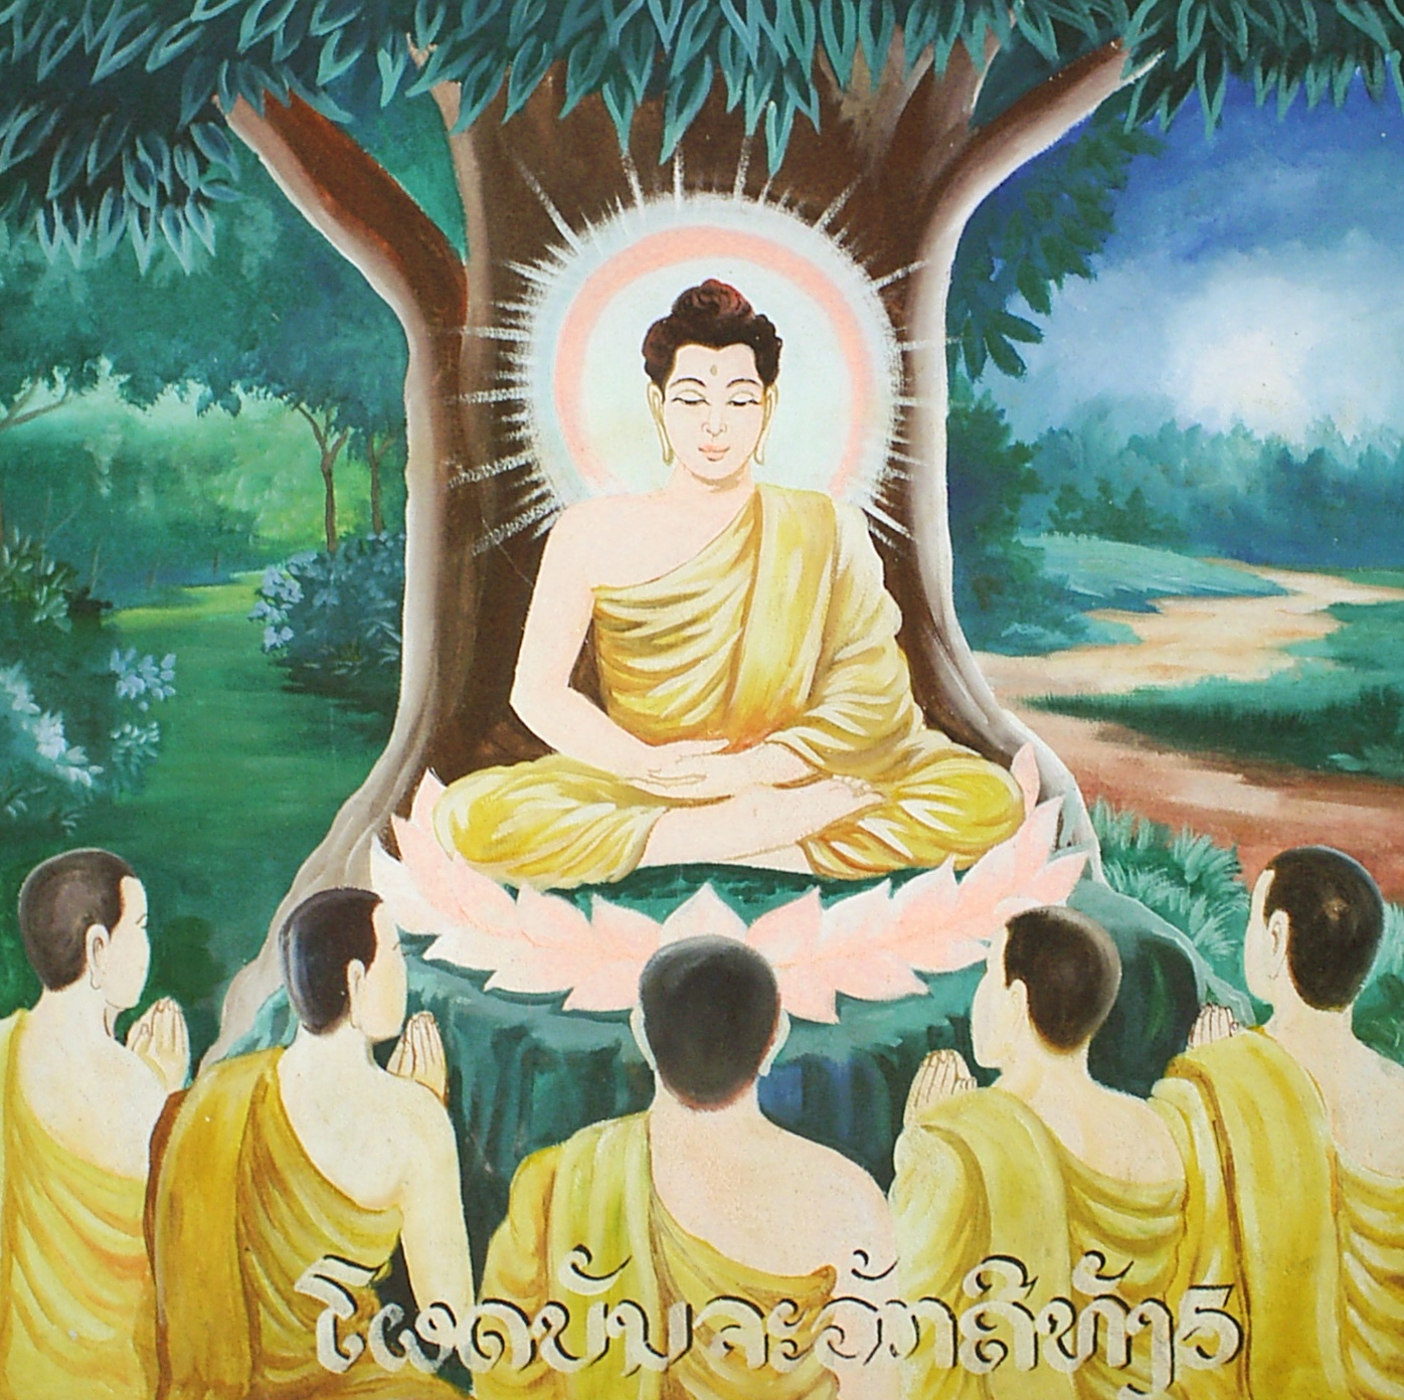 Enlightenment buddhism definition of sexual misconduct